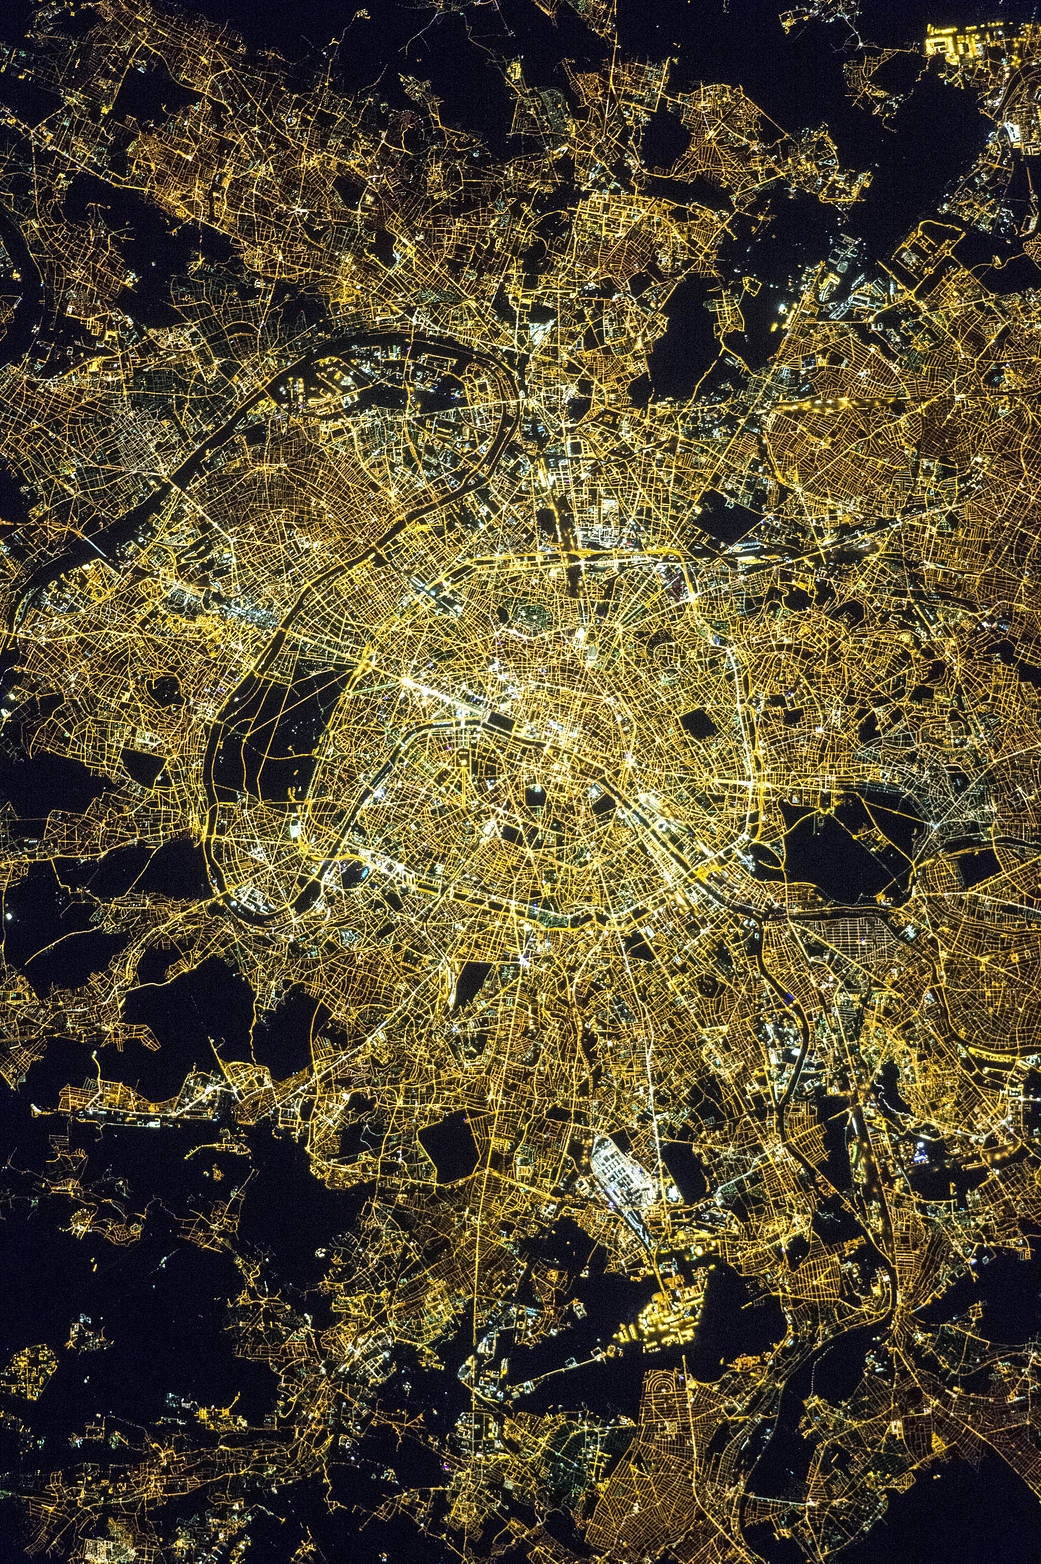 Nighttime view of the city of Paris from low Earth orbit showing bright streetlights